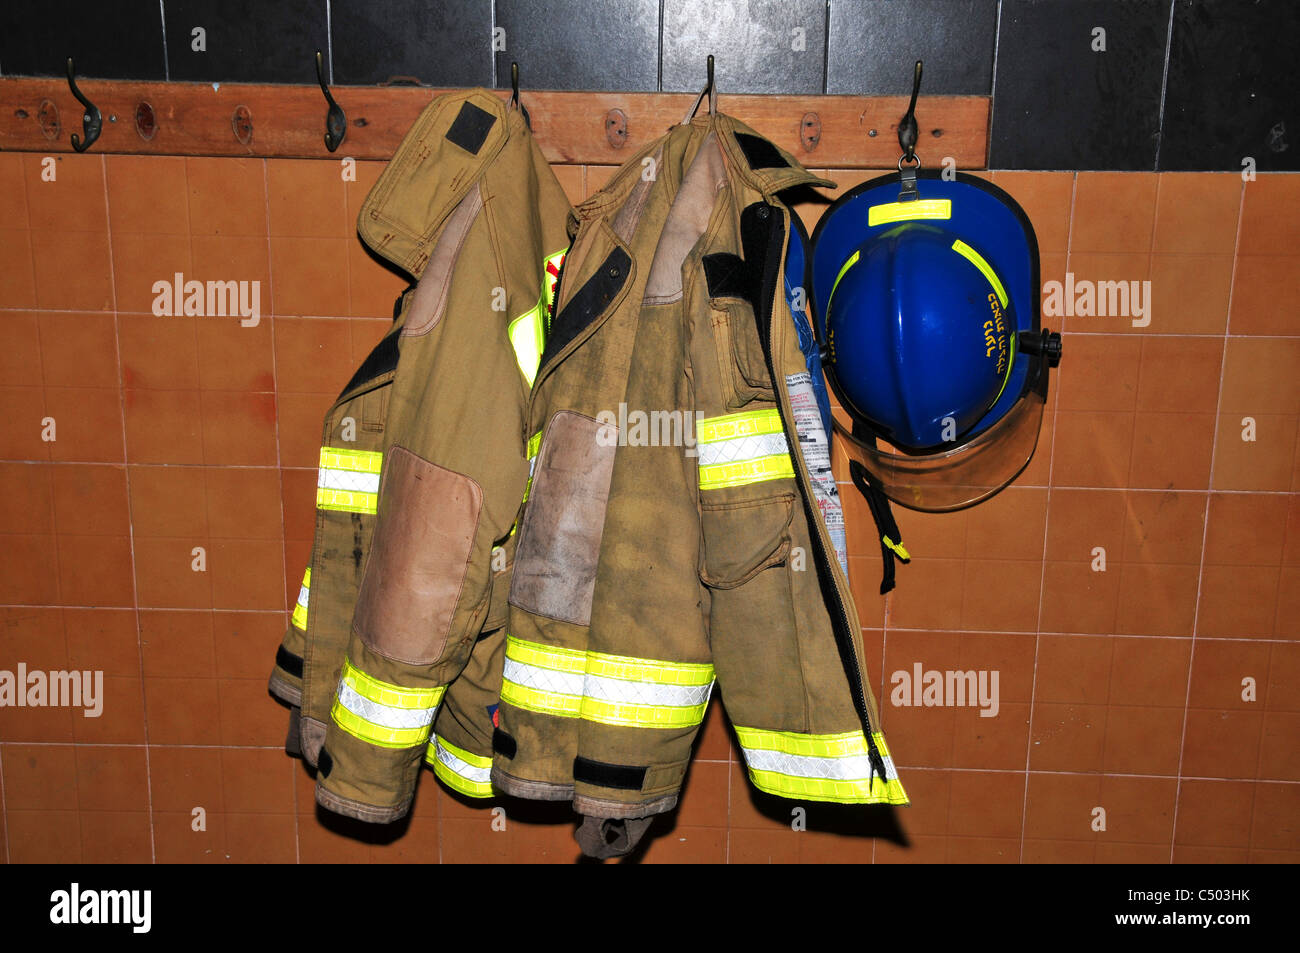 Fire fighters equipment Coats and Helmets - Stock Image